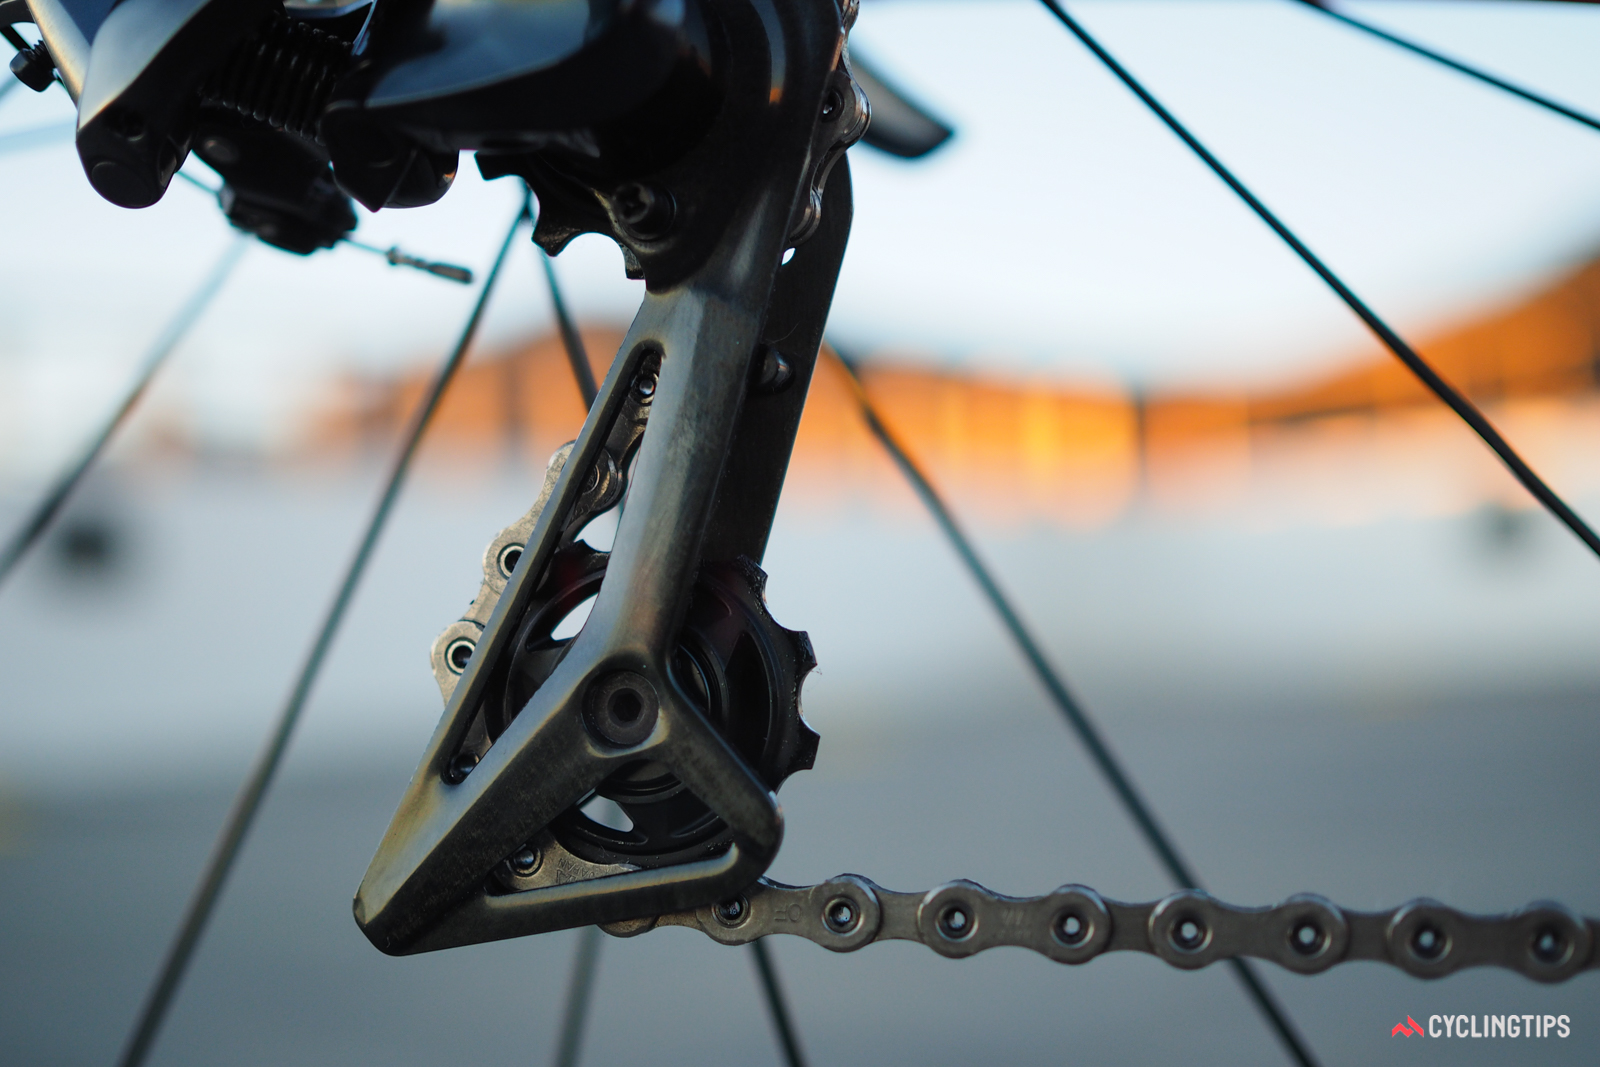 The carbon fiber pulley cage is admirably rigid.